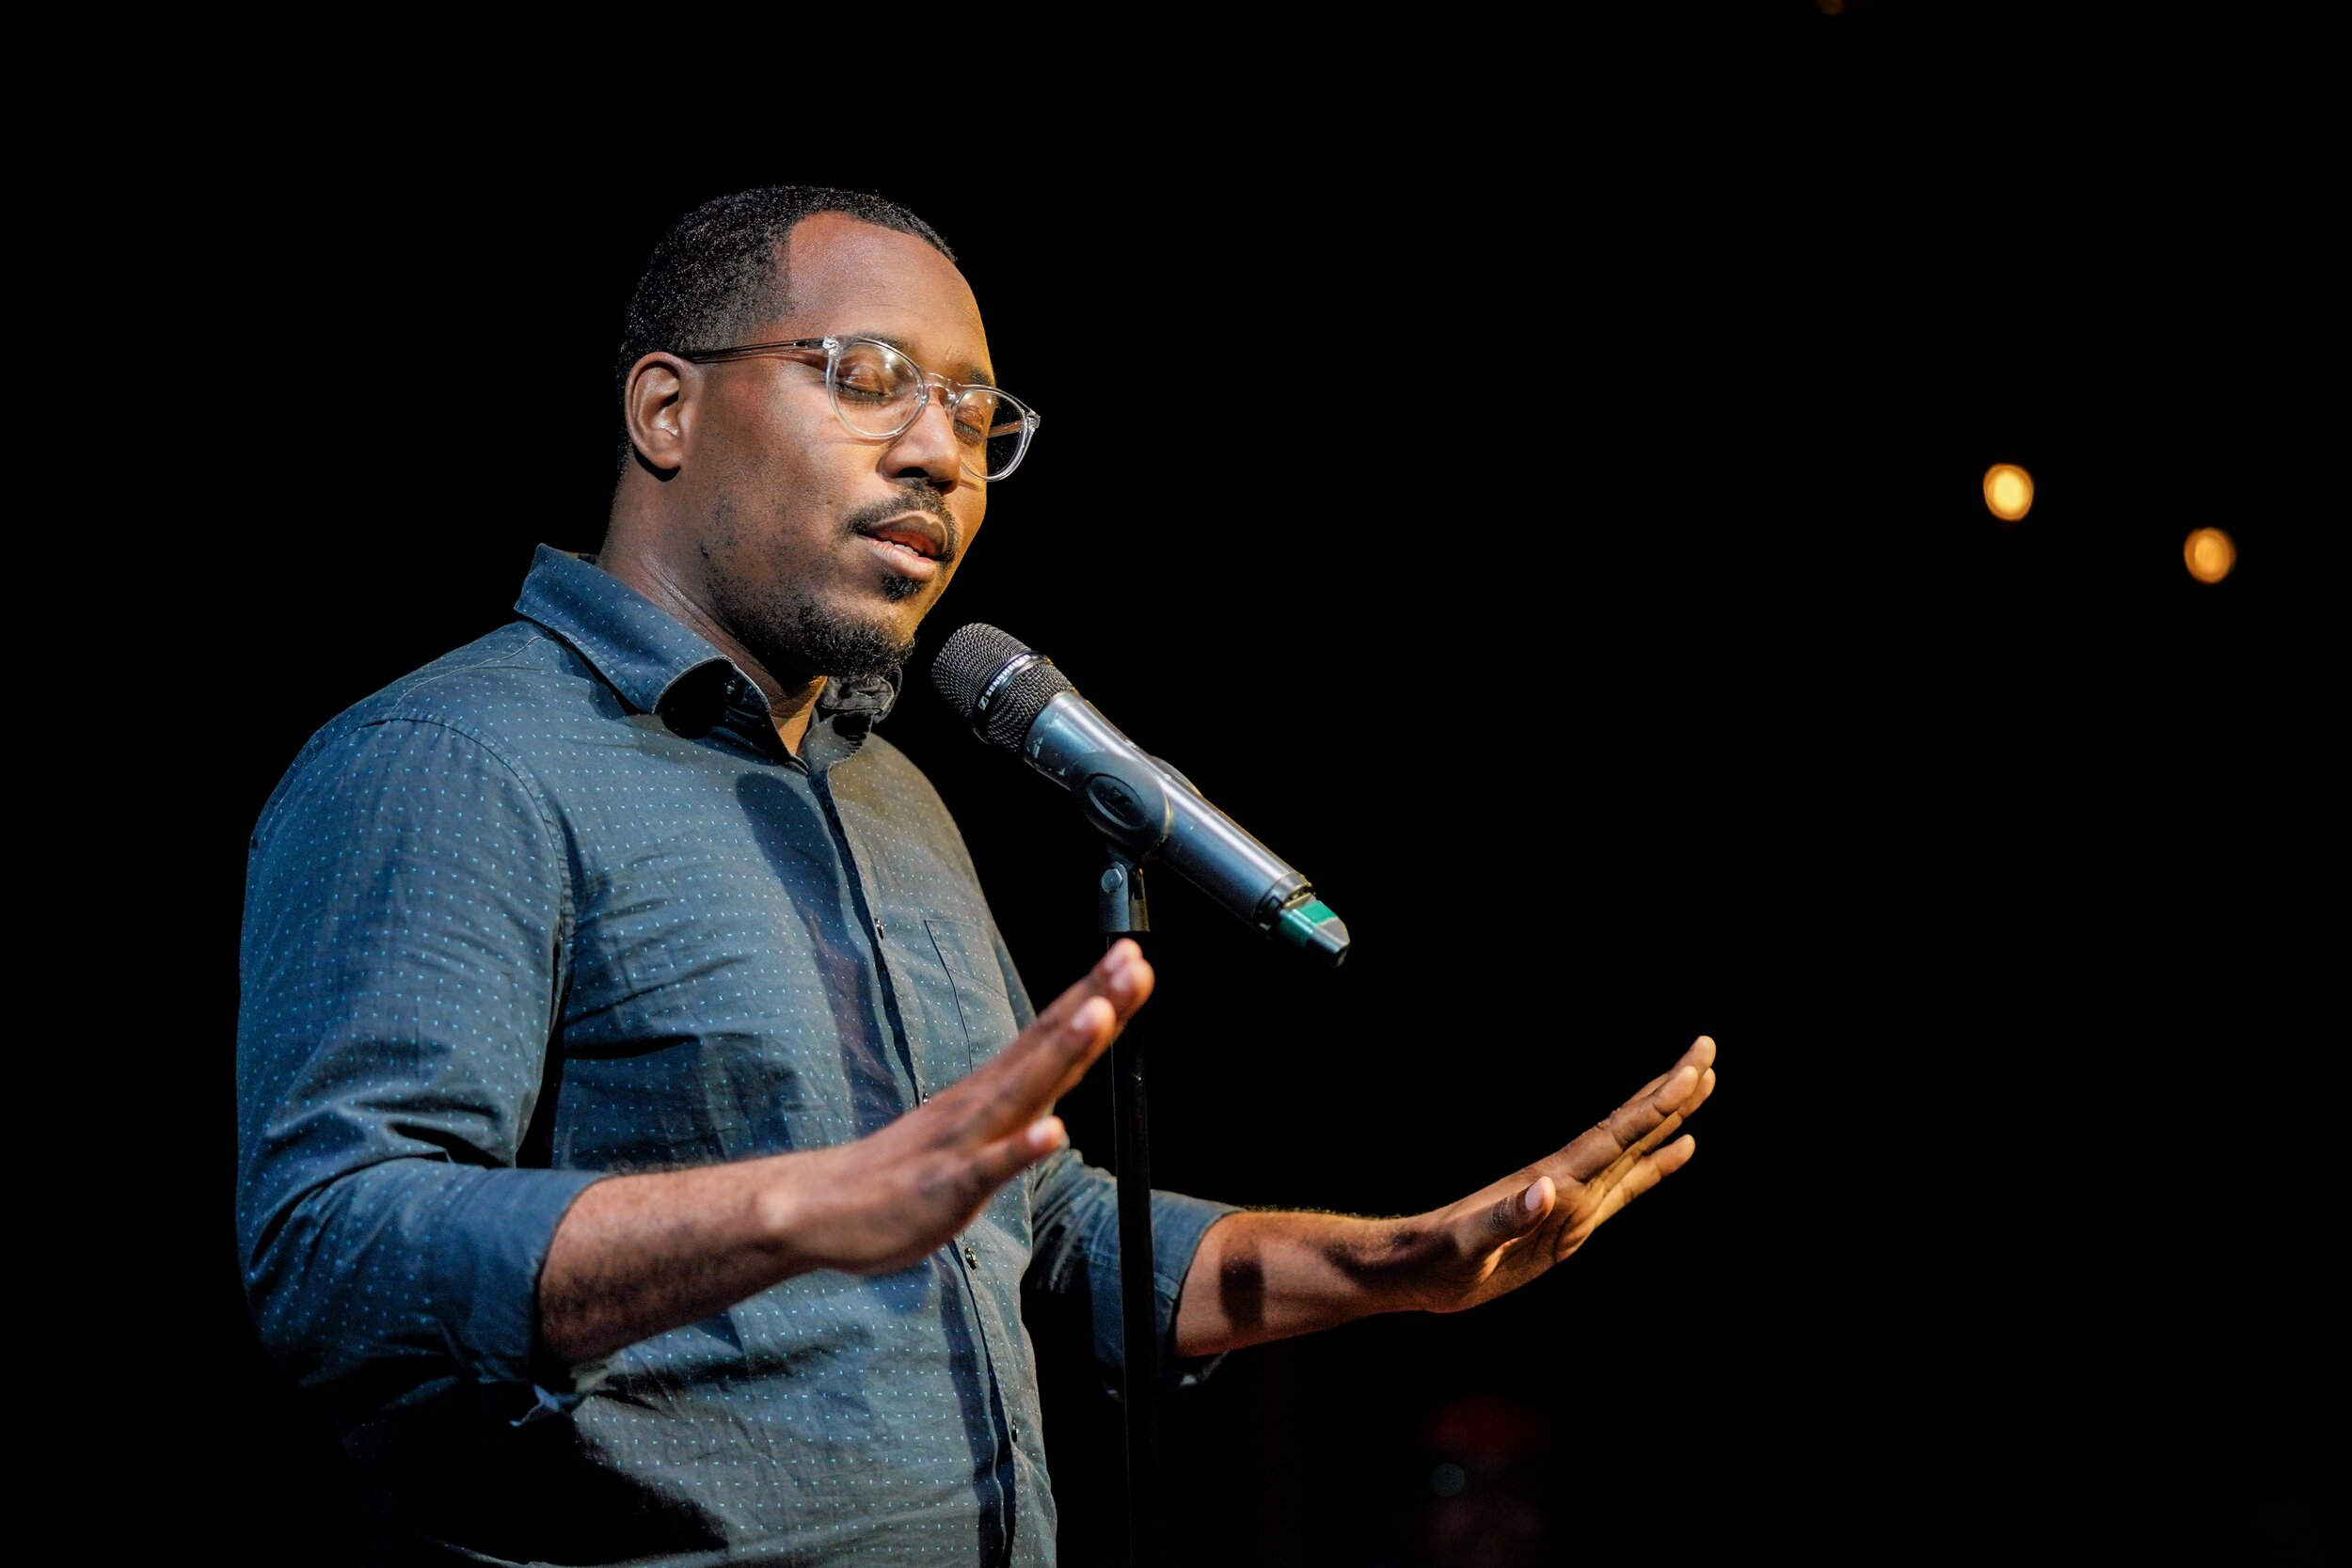 Alvin Irby shares his story with the Story Collider audience at Caveat in New York City in July 2019. Photo by Zhen Qin.